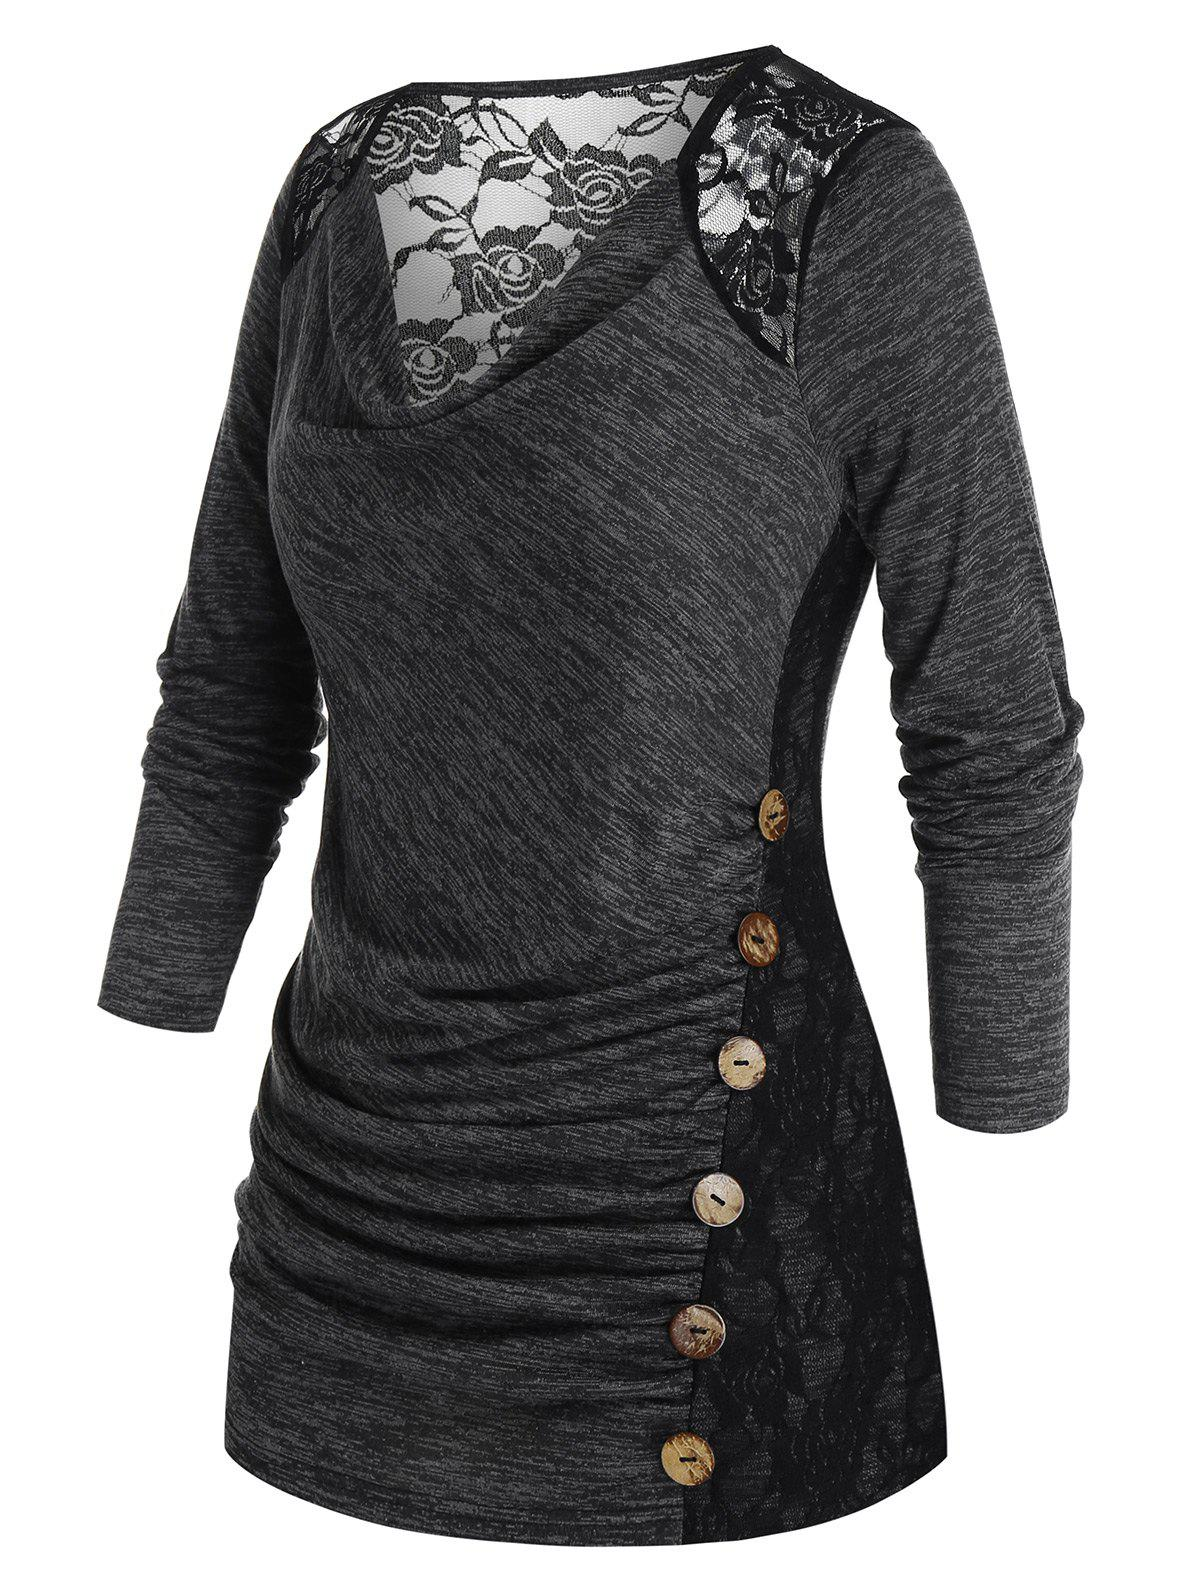 Plus Size Space Dye Lace Insert Sheer Long Sleeve Tee - CARBON GRAY 4X